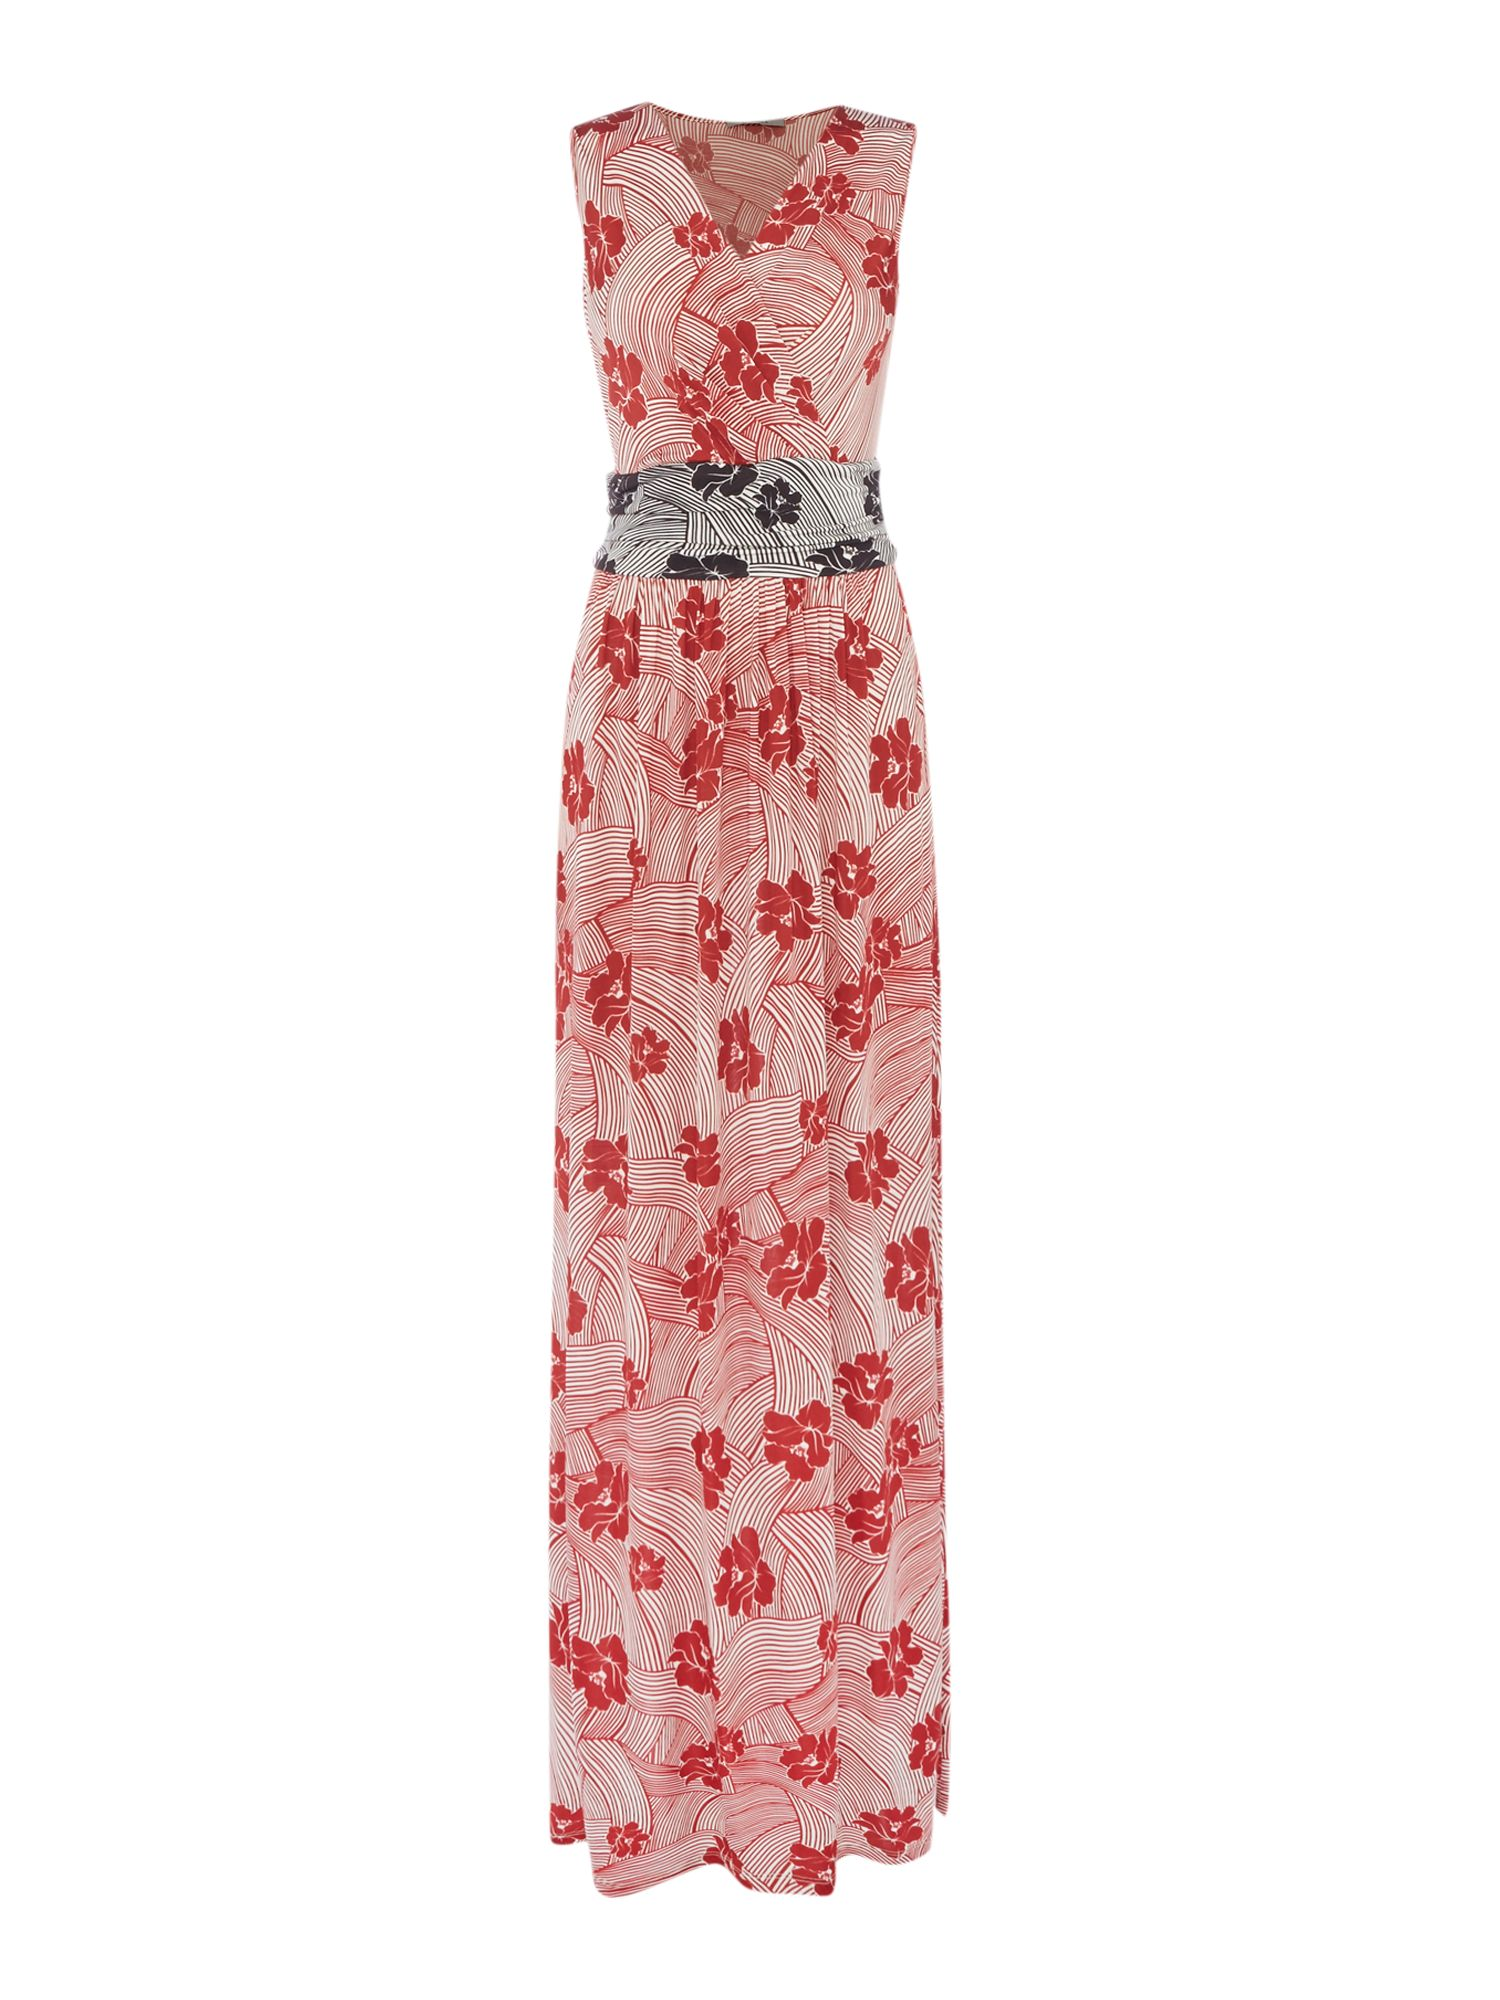 Marella FAZIO sleeveless maxi dress in floral print, Red